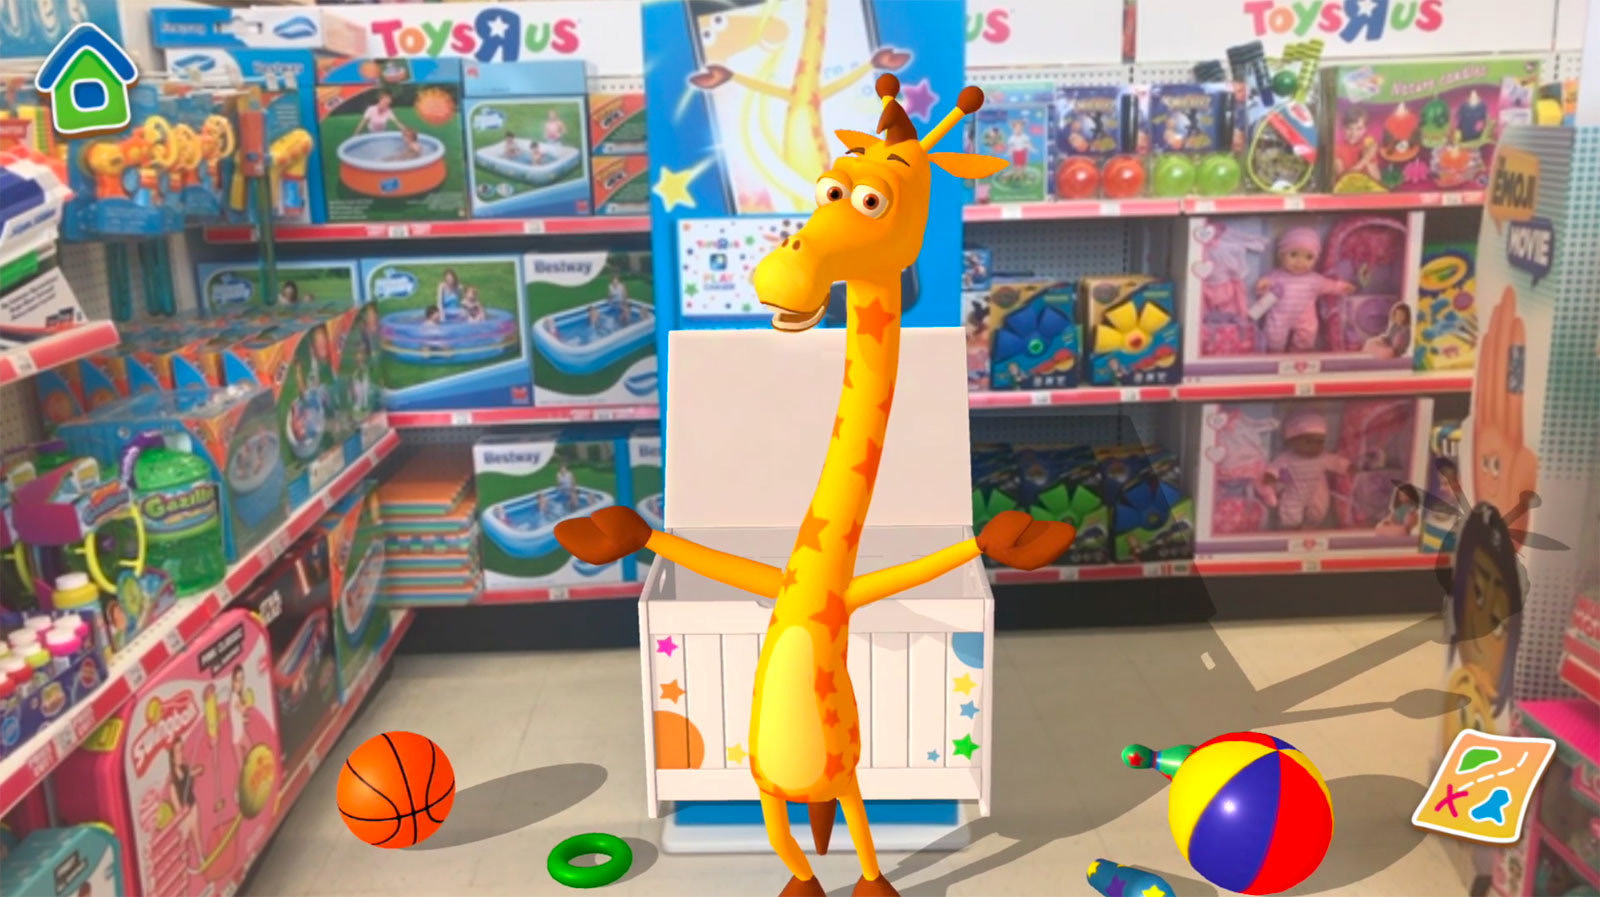 Toys R Us Canada Introduces Snapchat Augmented Reality Experience